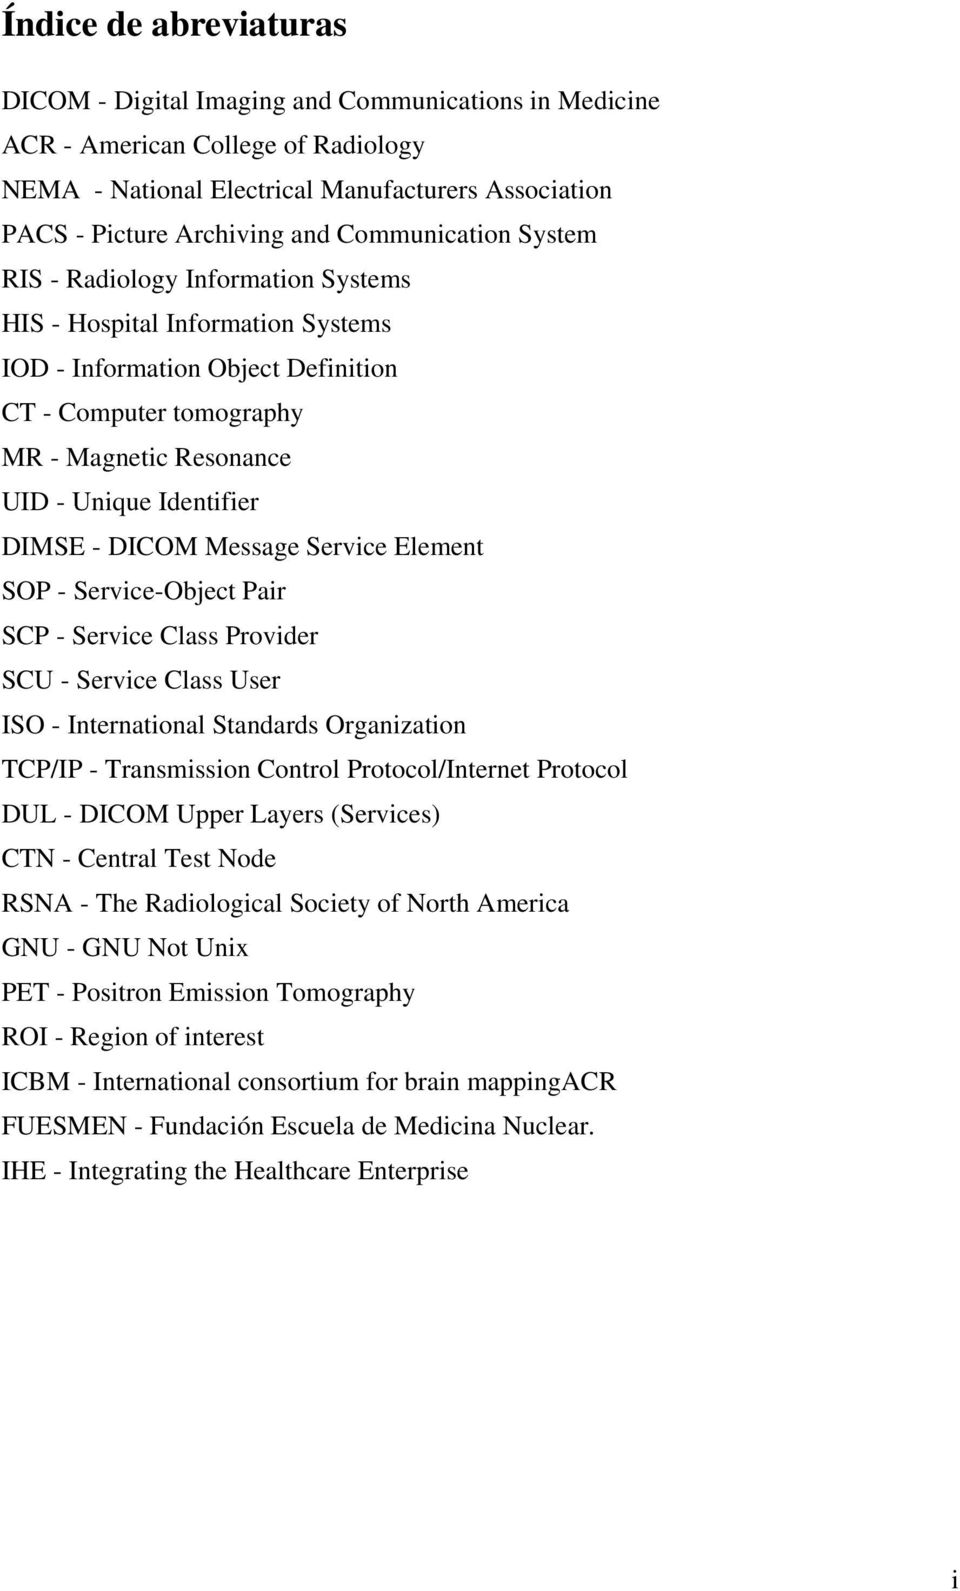 Identifier DIMSE - DICOM Message Service Element SOP - Service-Object Pair SCP - Service Class Provider SCU - Service Class User ISO - International Standards Organization TCP/IP - Transmission